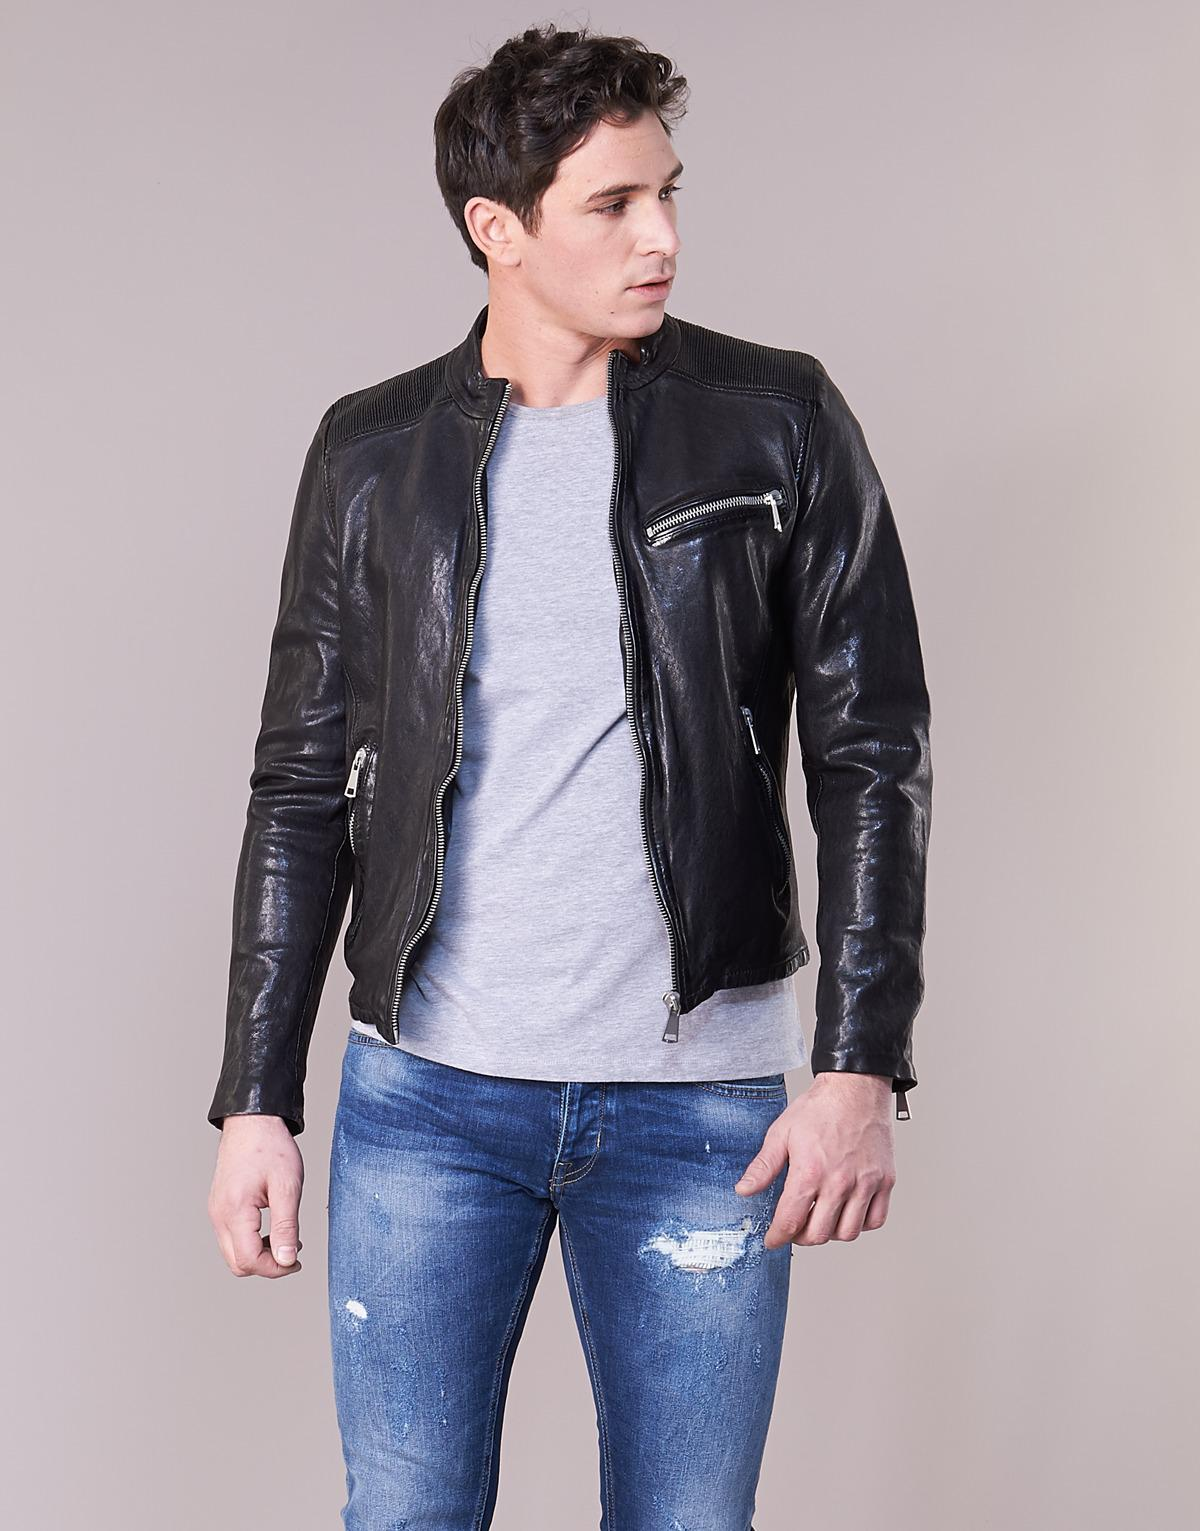 1a7488145 Redskins cross leather jacket in black for men lyst jpg 1200x1531 Redskins  mens leather jackets